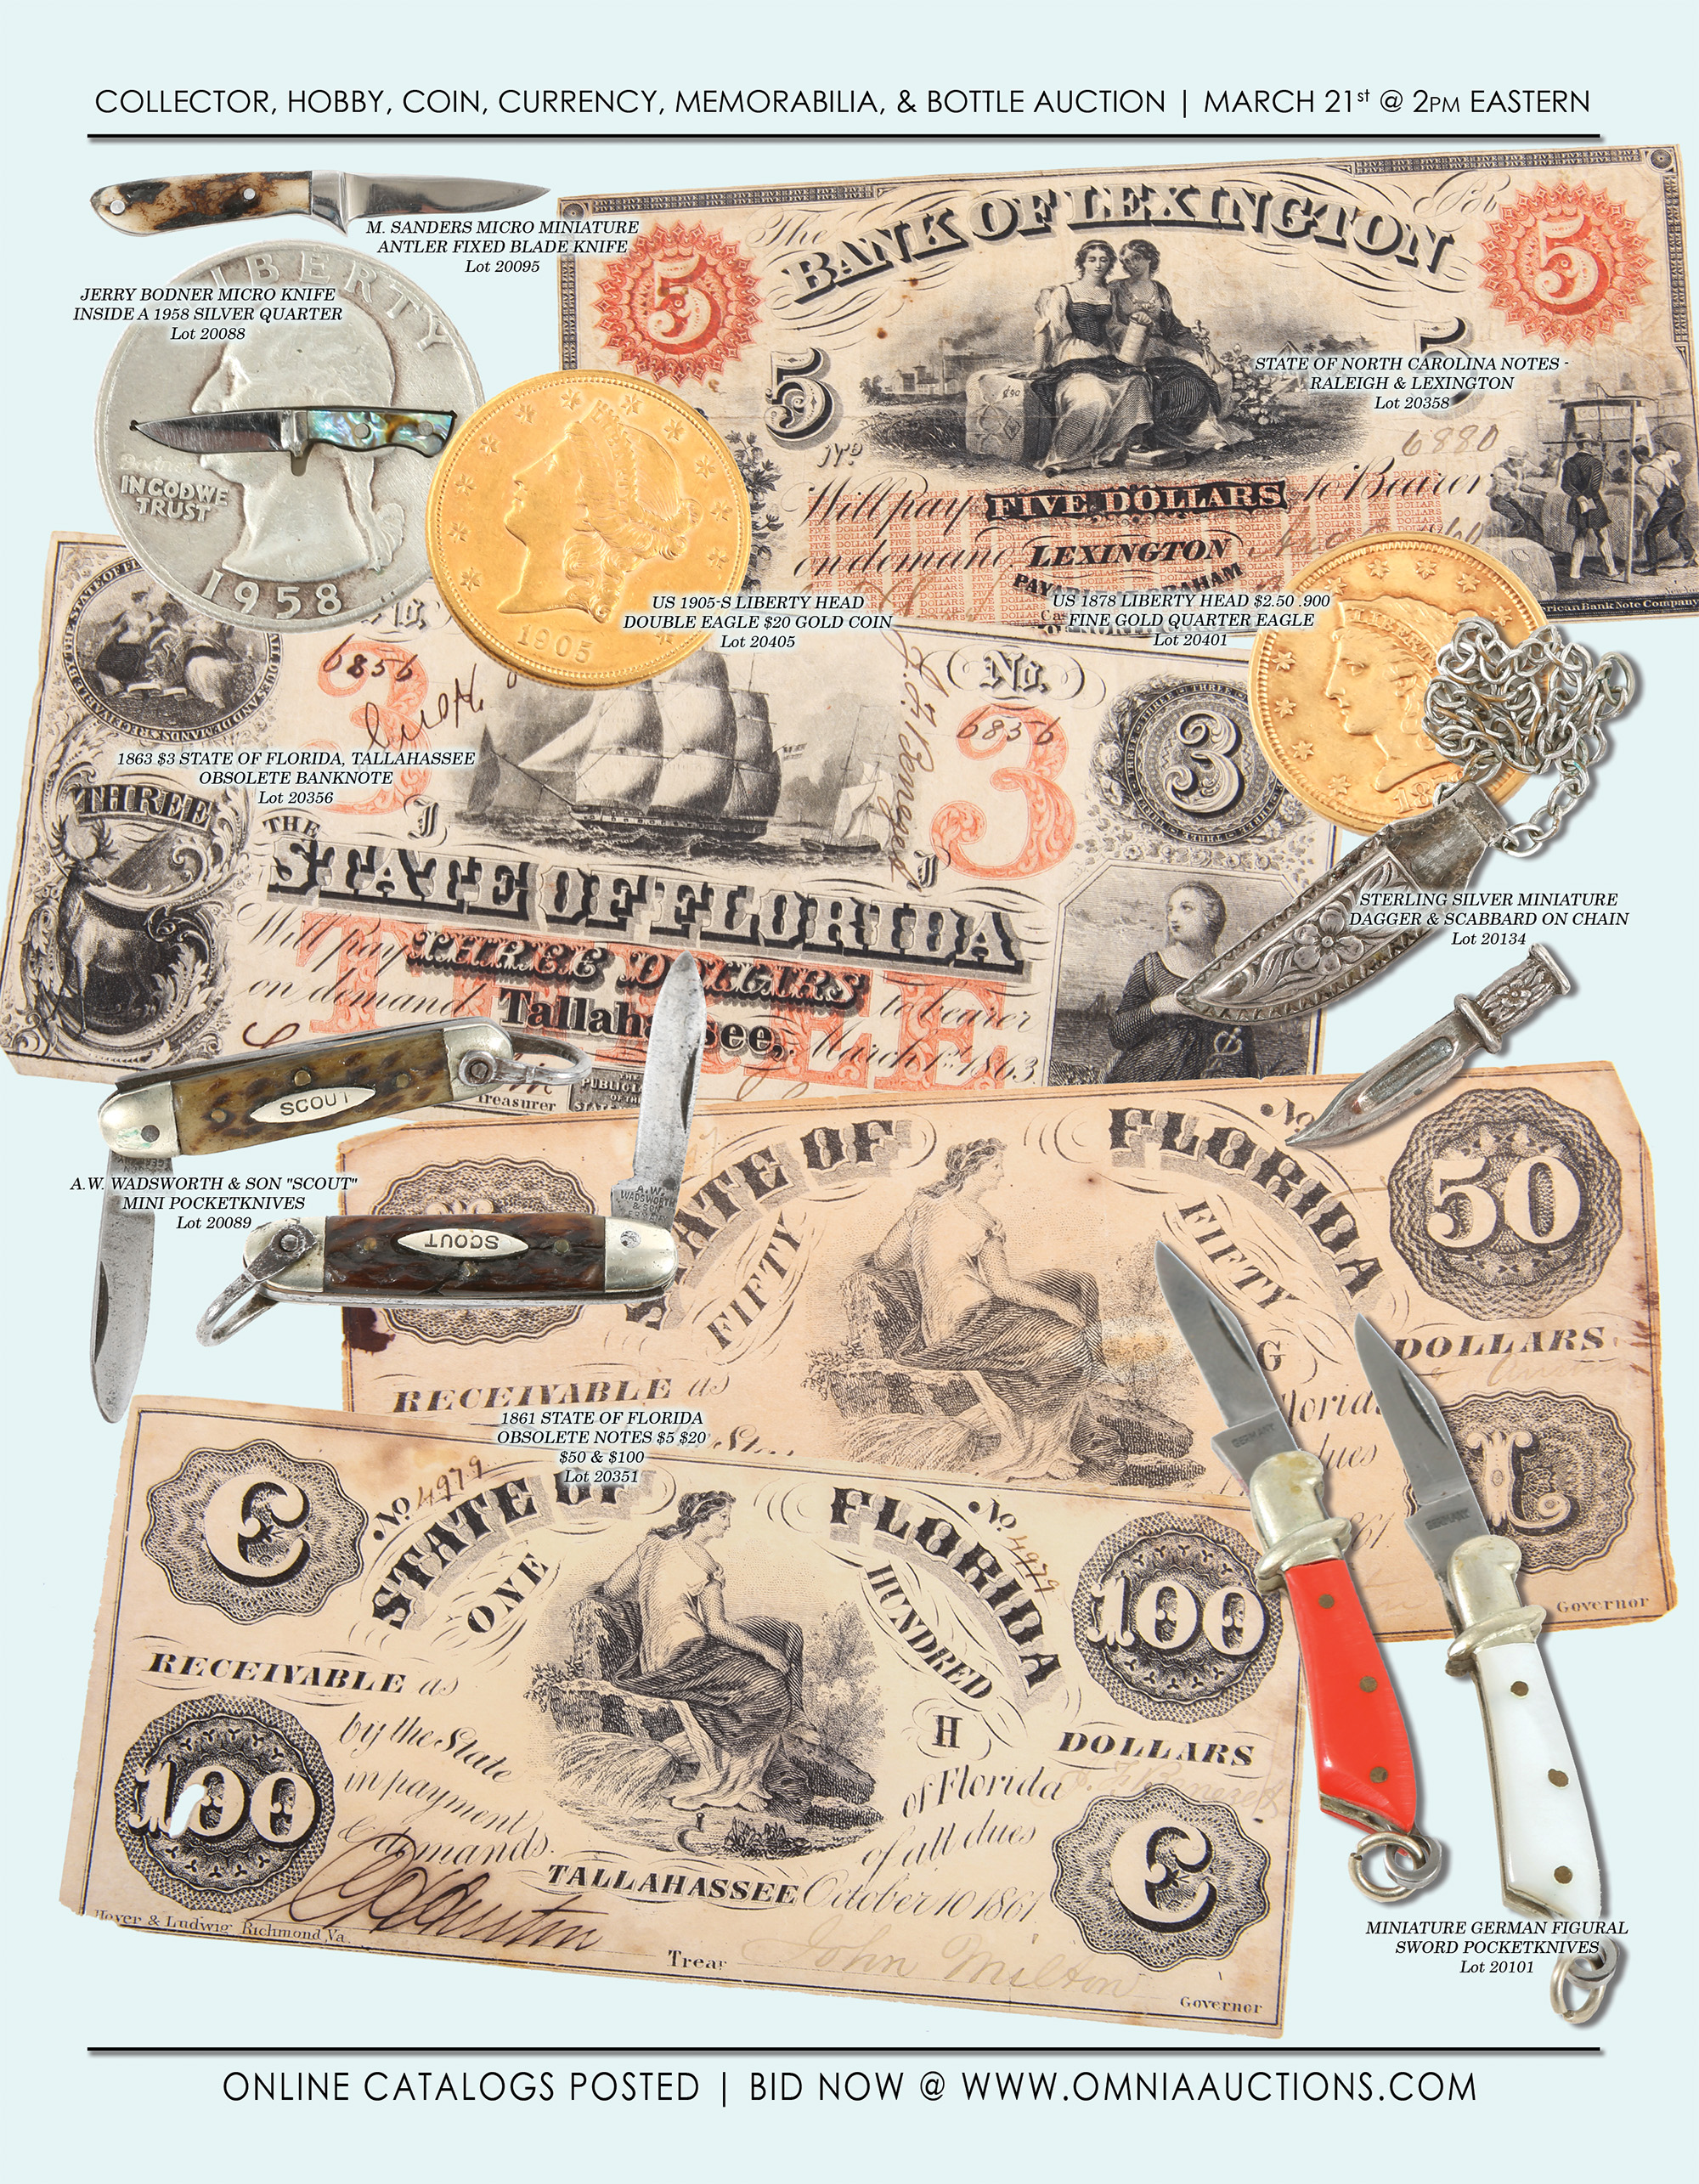 Collector, Hobby, Coin, Currency, Sport, Memorabilia & Bottle Auction - Coin & Currency 2